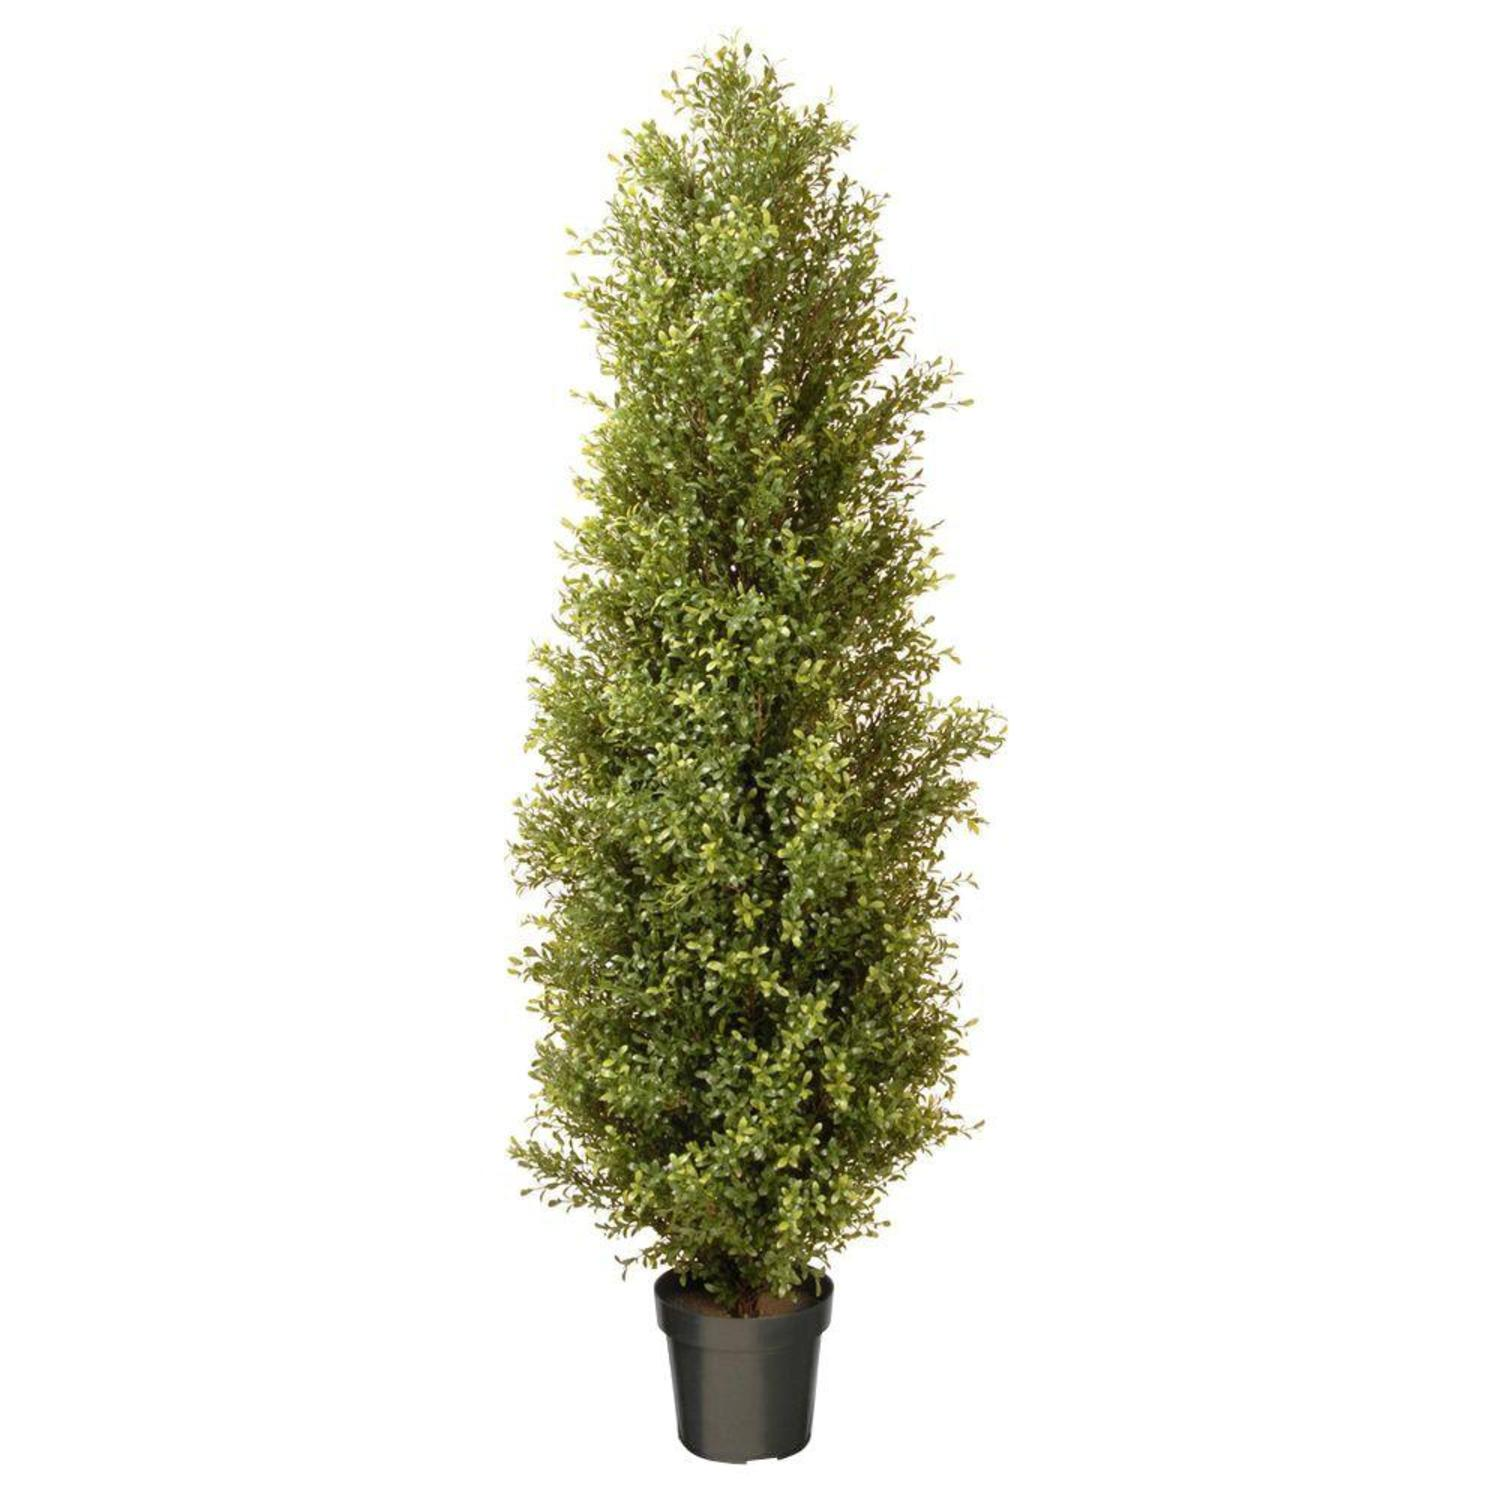 "72"" Potted Tall Artificial Two-Tone Green Argentia Plant"